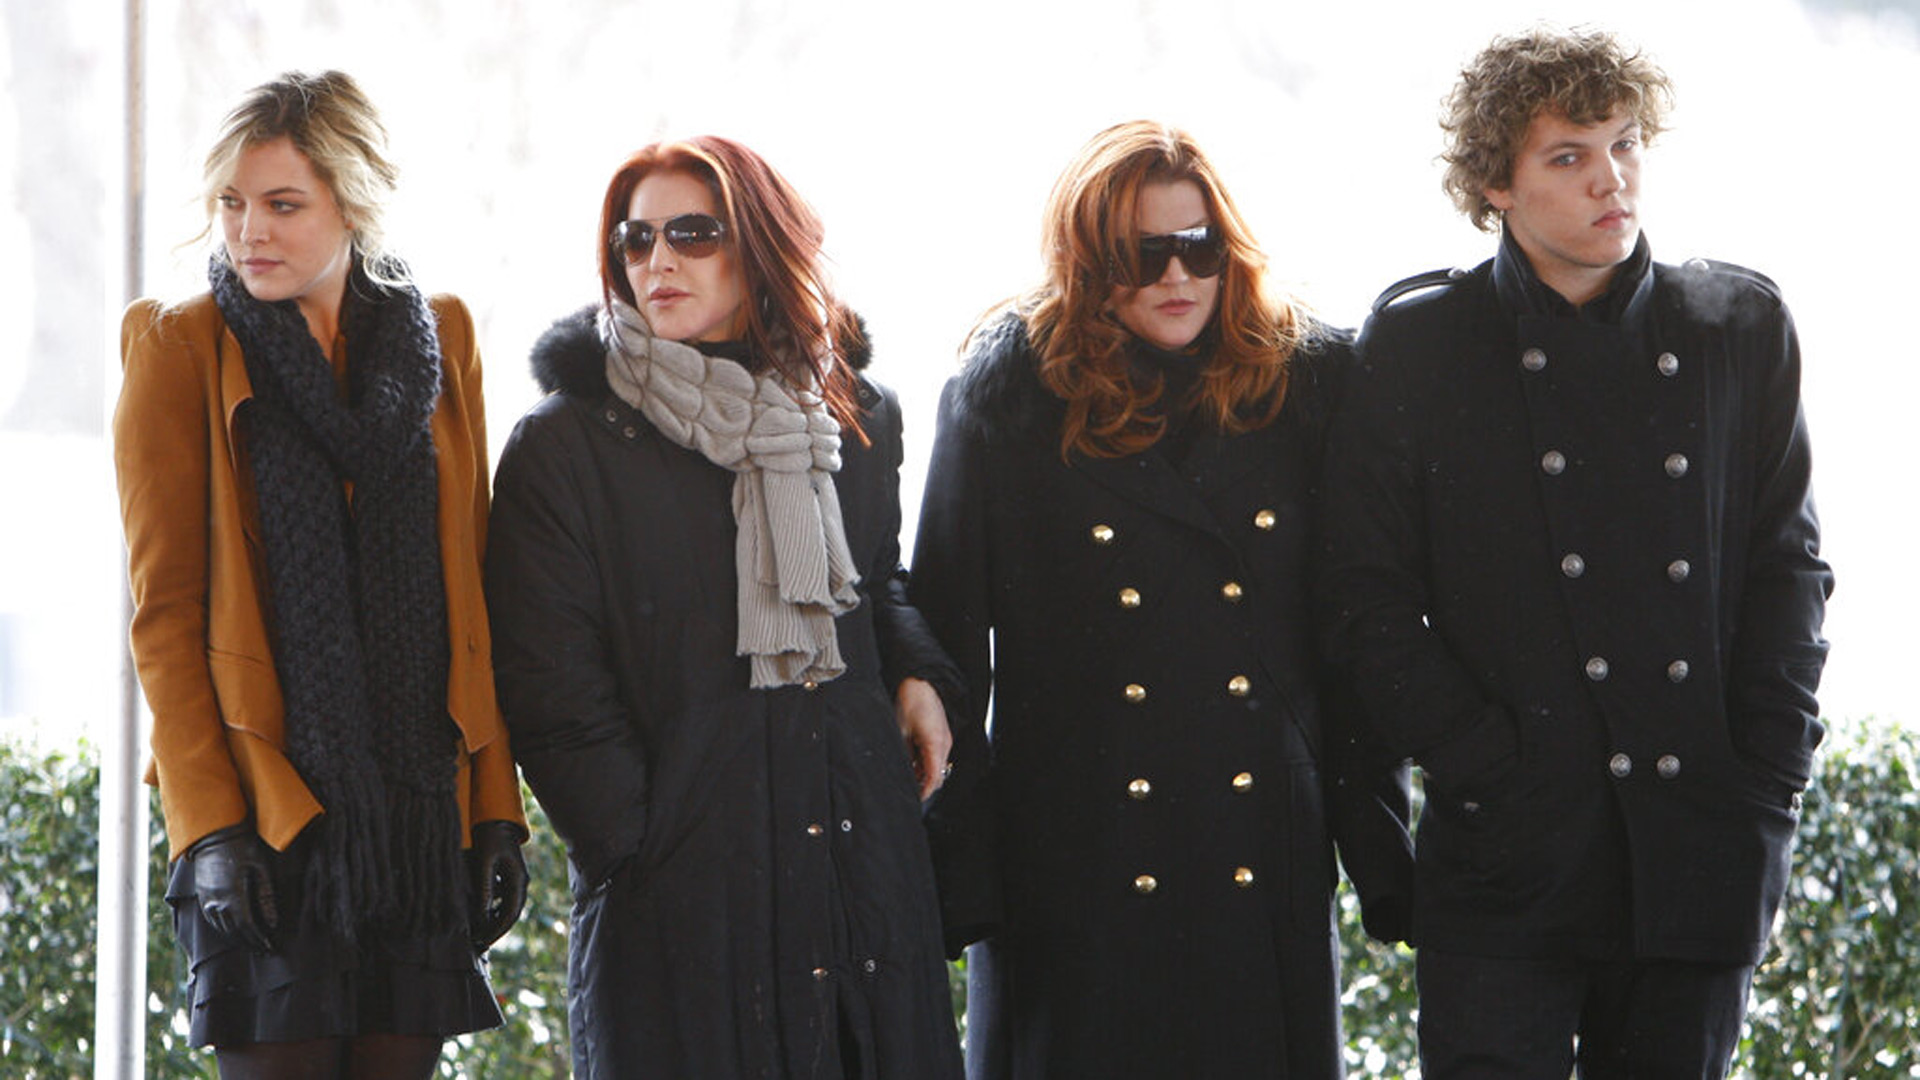 FILE - In this Jan. 8, 2010, file photo, Priscilla Presley, second from left, her daughter, Lisa Marie Presley, second from right, and Lisa Marie's children, Riley Keough, left, and Benjamin Keough, right, take part in a ceremony in Memphis, Tenn., commemorating Elvis Presley's 75th birthday. Keough has died. (AP Photo/Mark Humphrey, File)